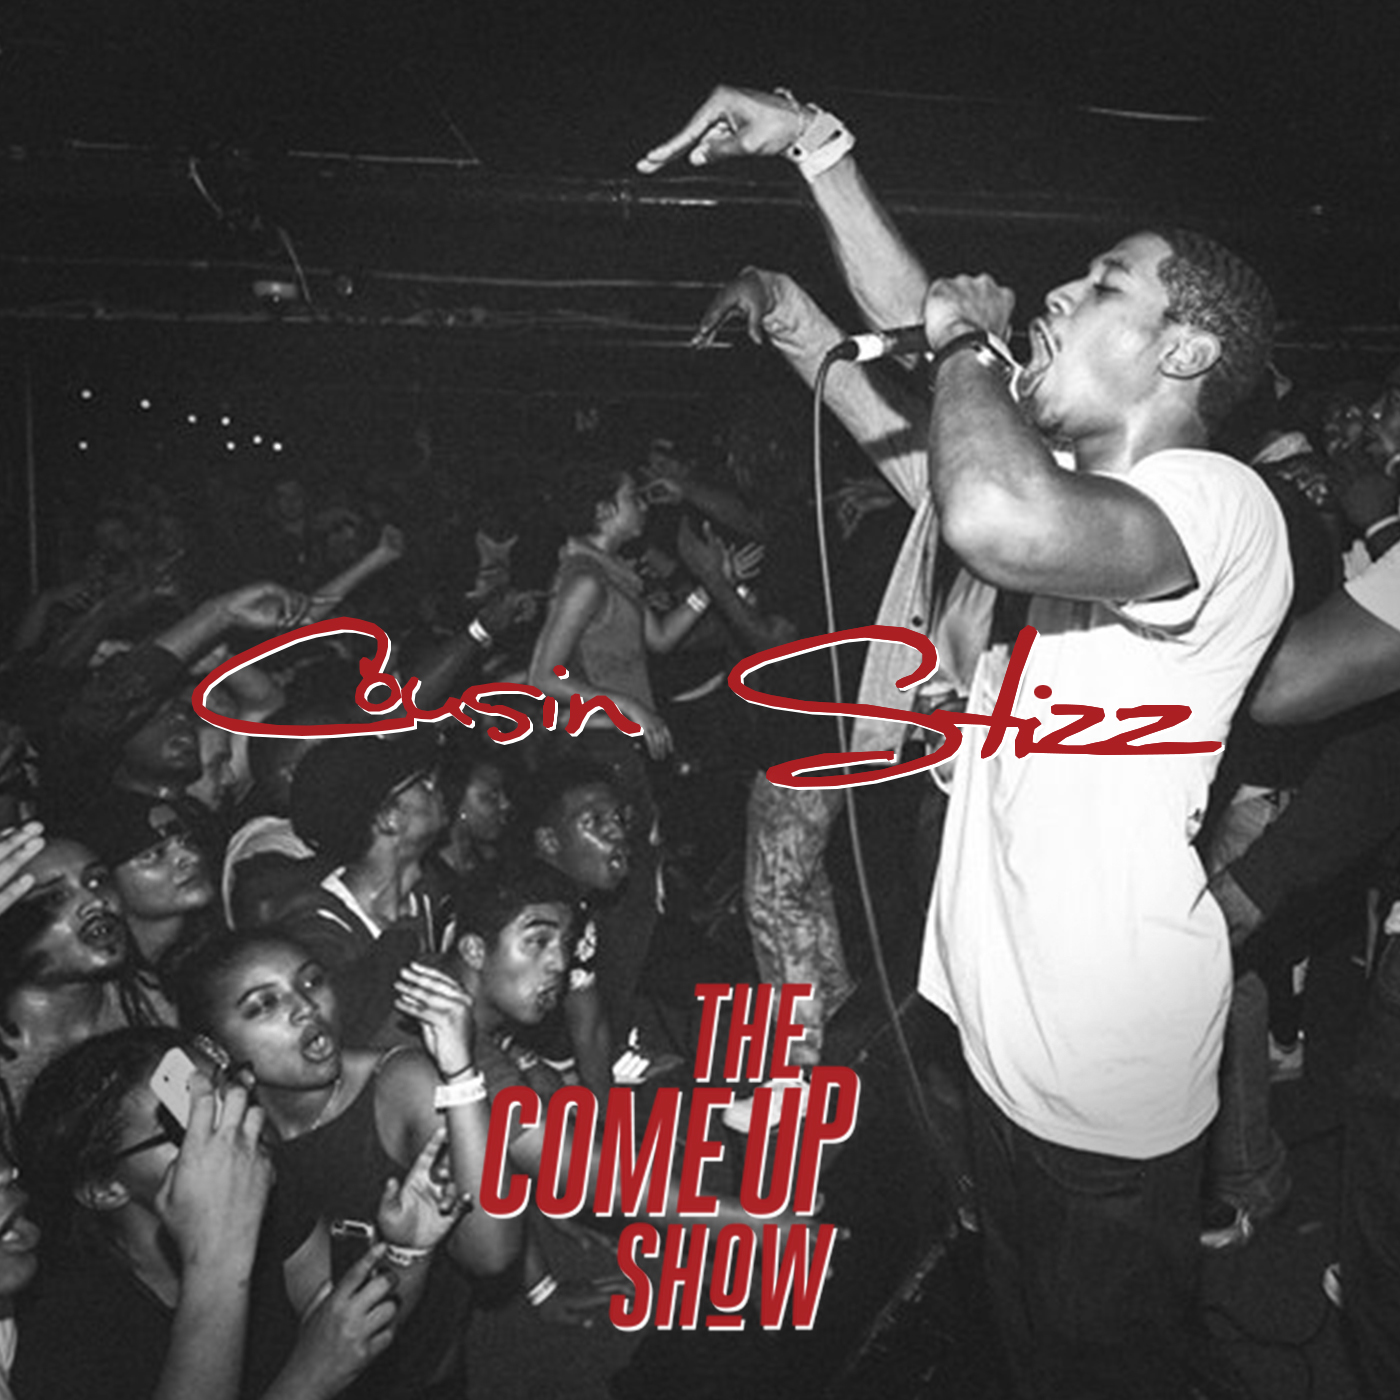 cousin stizz on the come up show